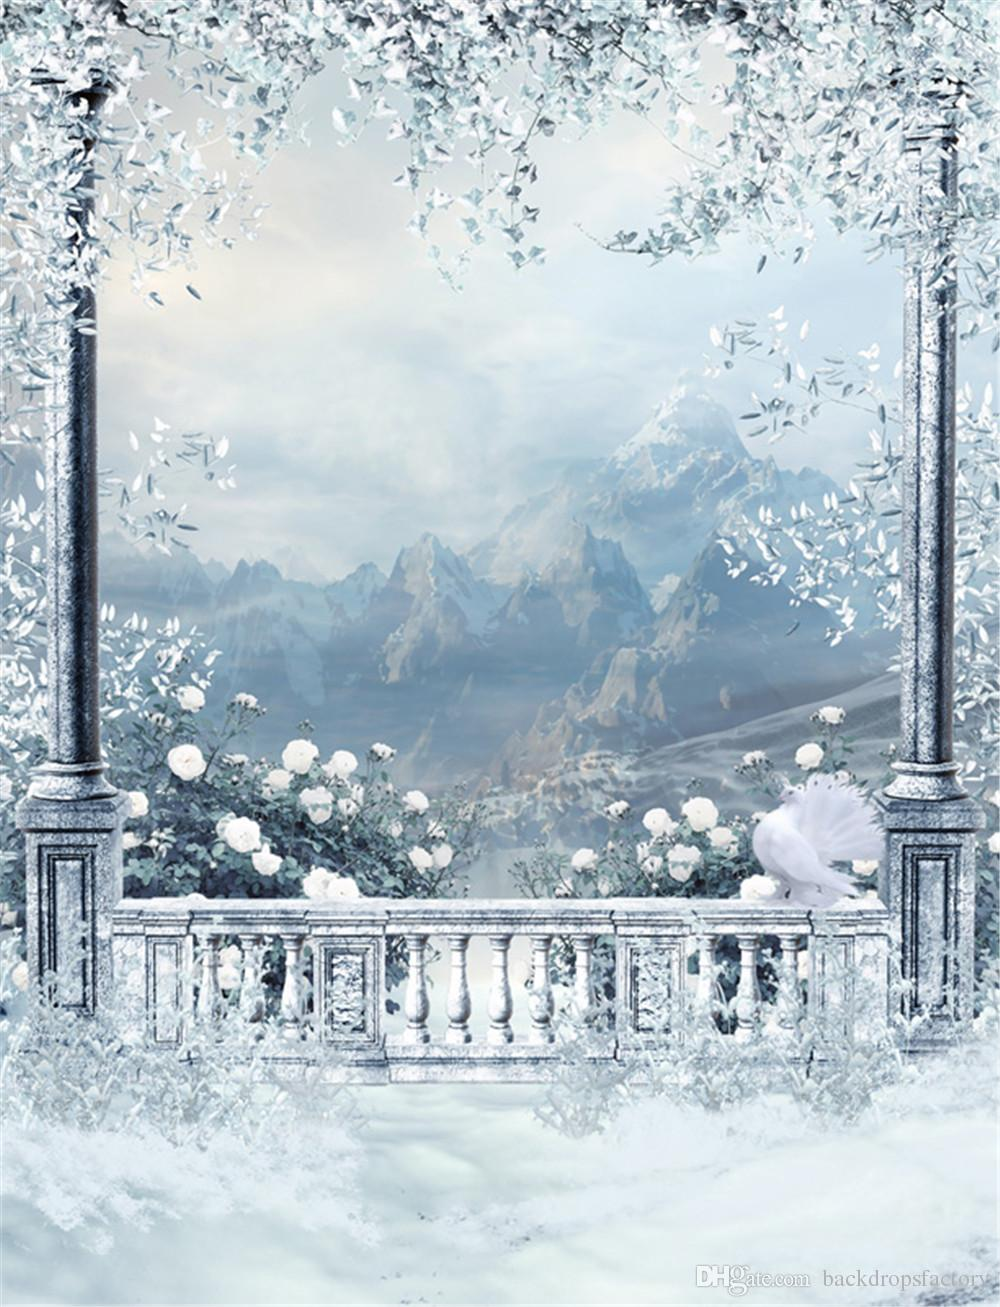 Falling Snow Wallpaper Note 3 2019 Winter Snow Scenic Wallpaper Outdoor Background White